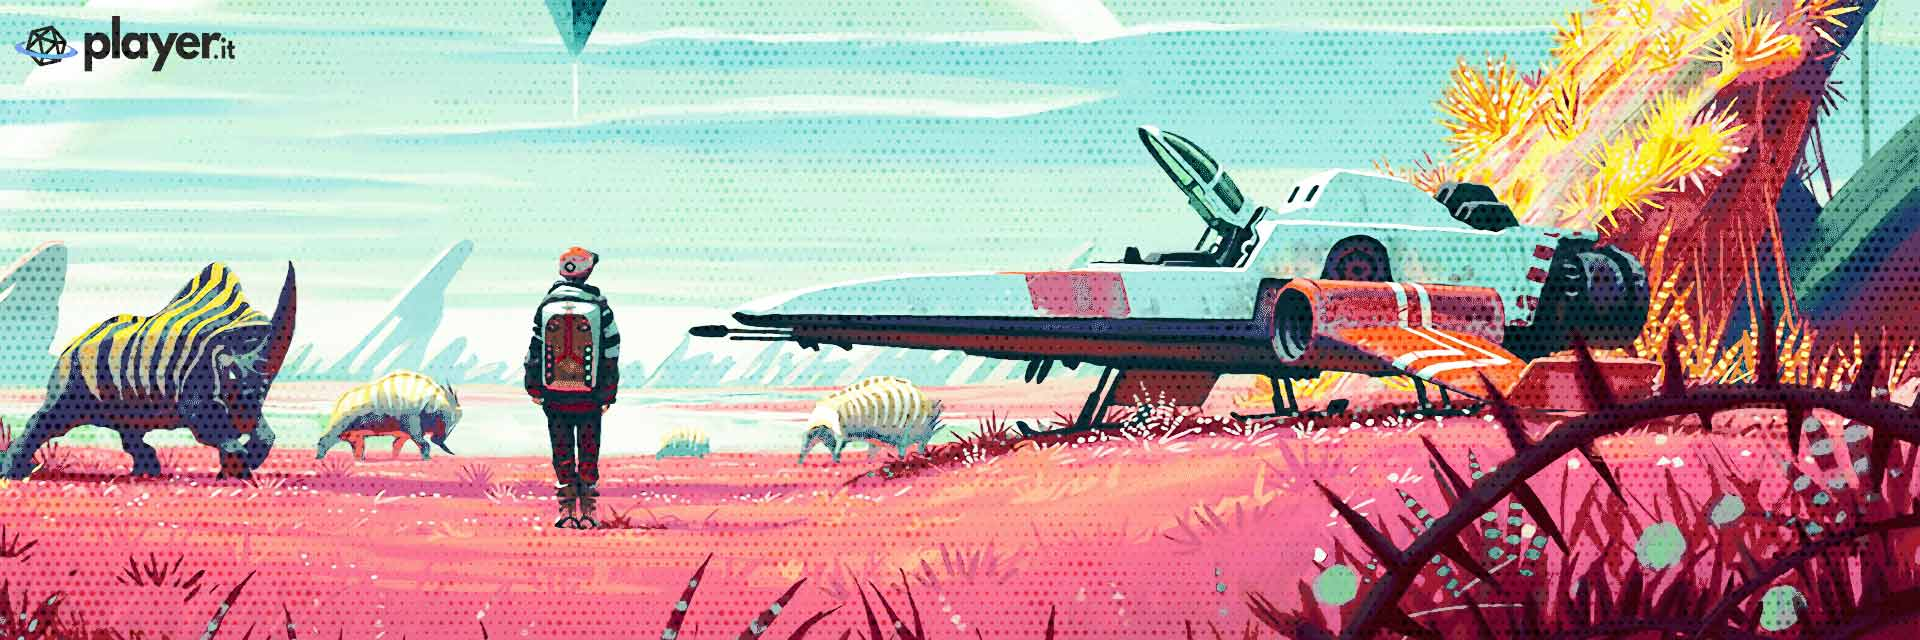 no man's sky wallpaper in HD